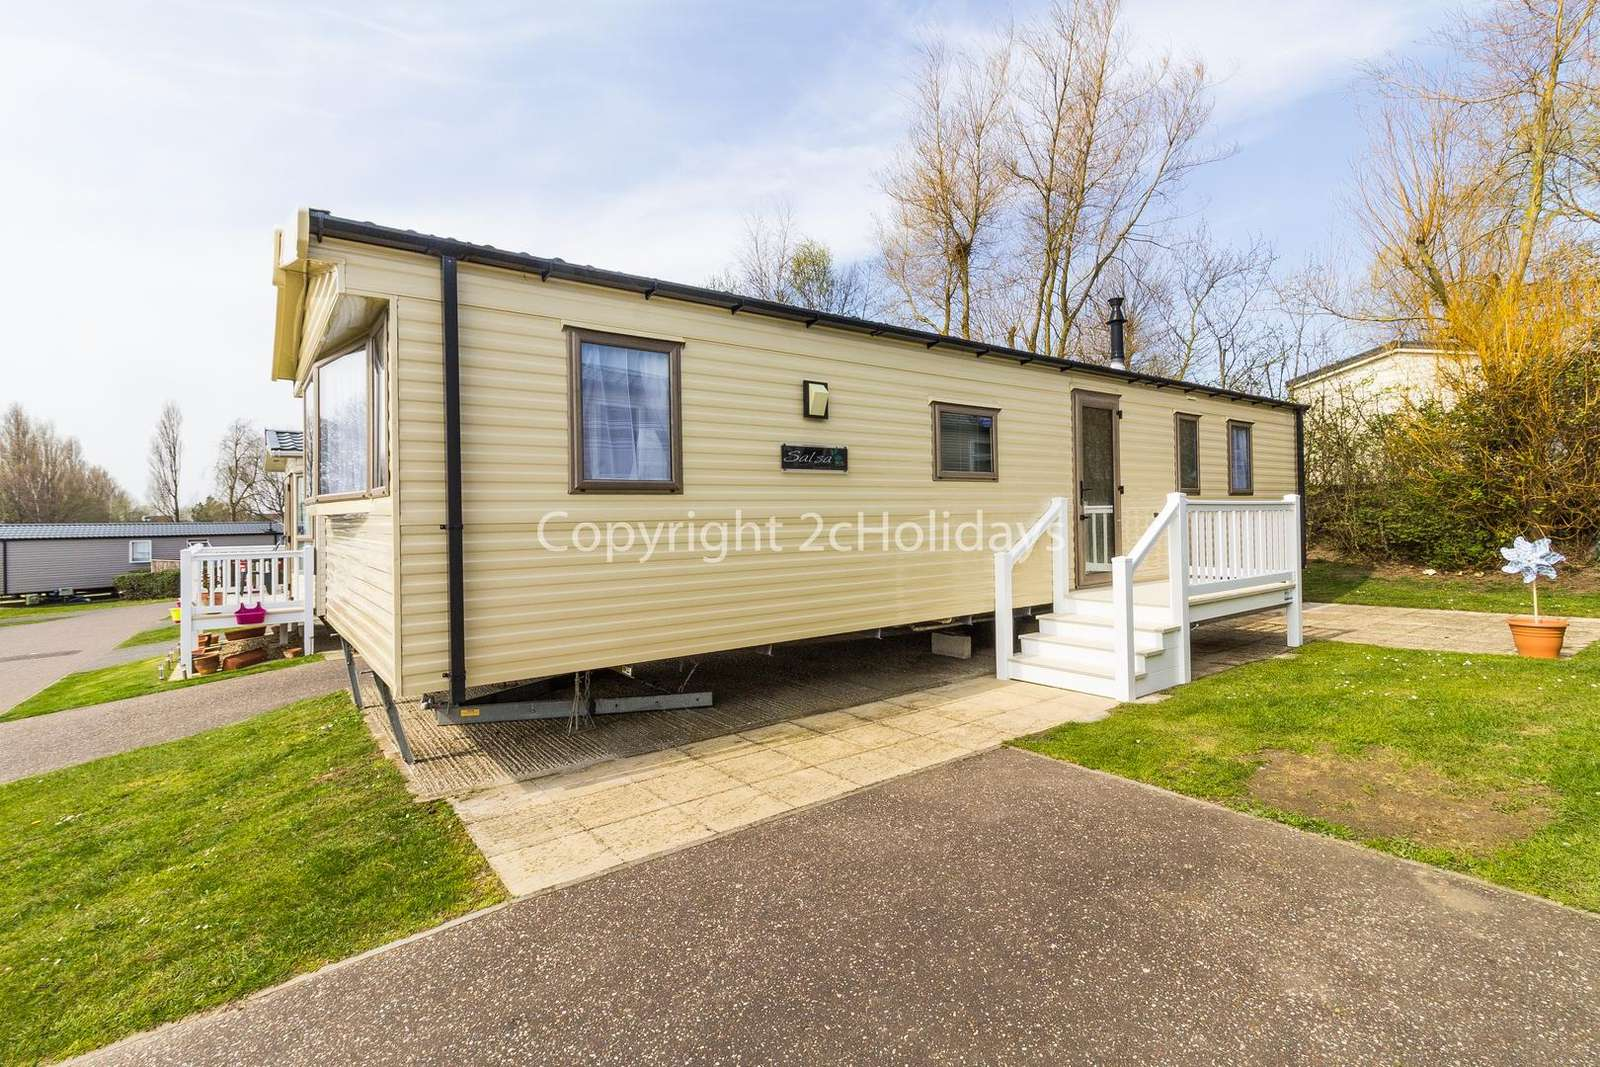 Stunning mobile home with beach access and a short drive to the seaside town of Great Yarmouth